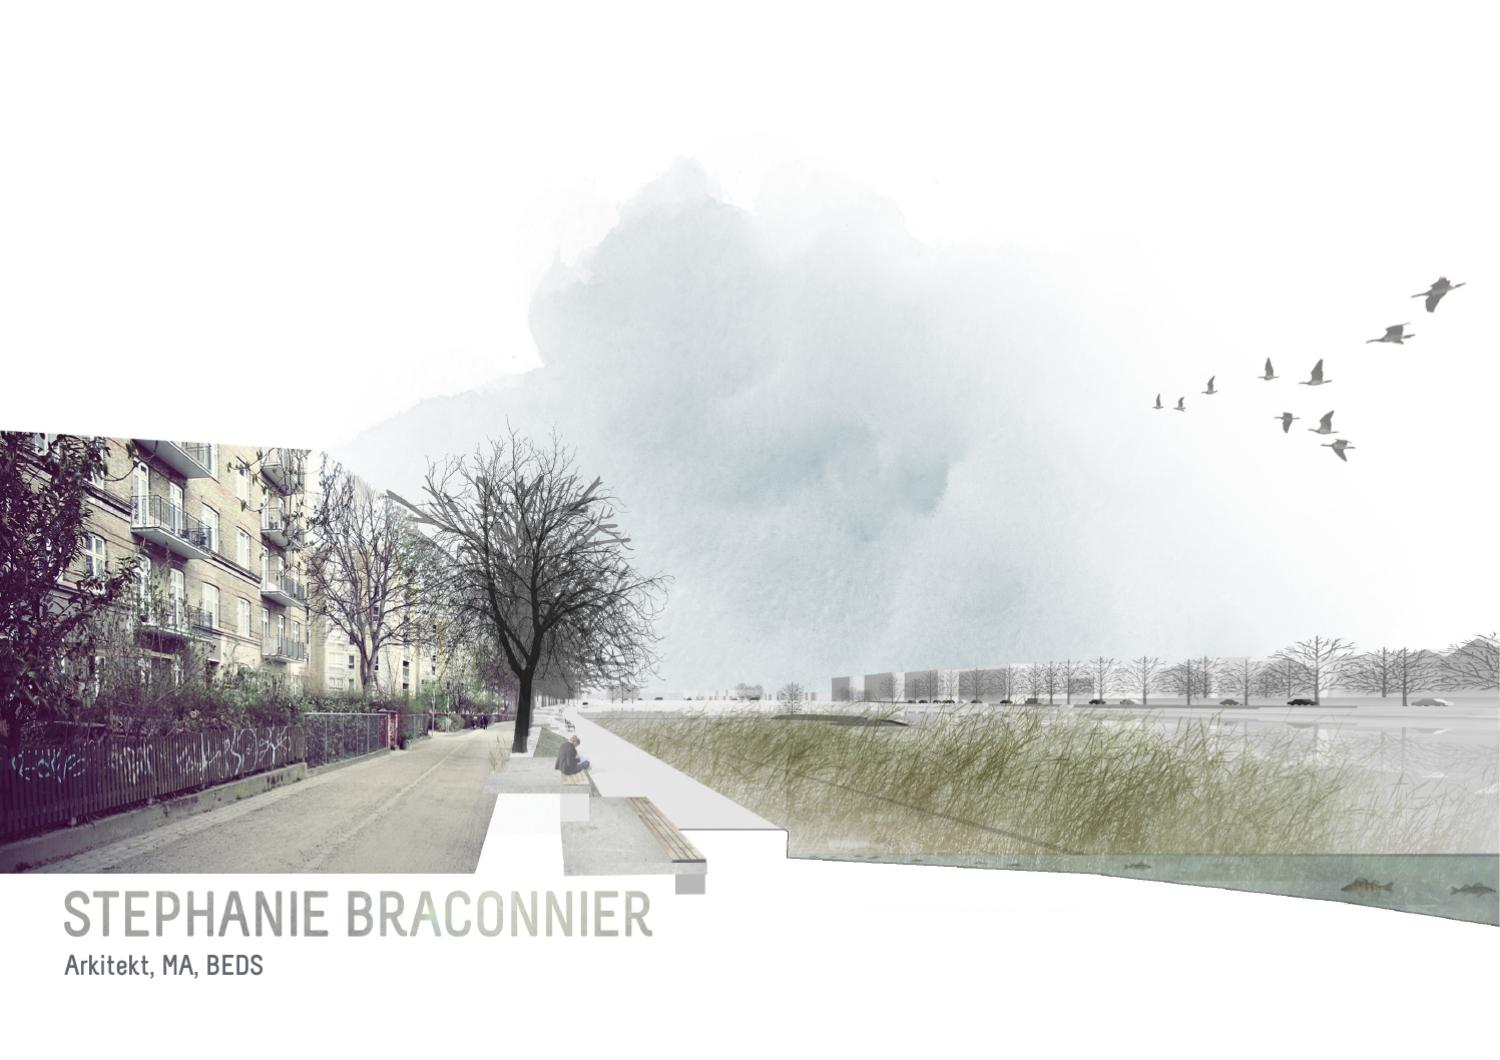 Stephanie braconnier architecture portfolio 2011 by for Garden design portfolio